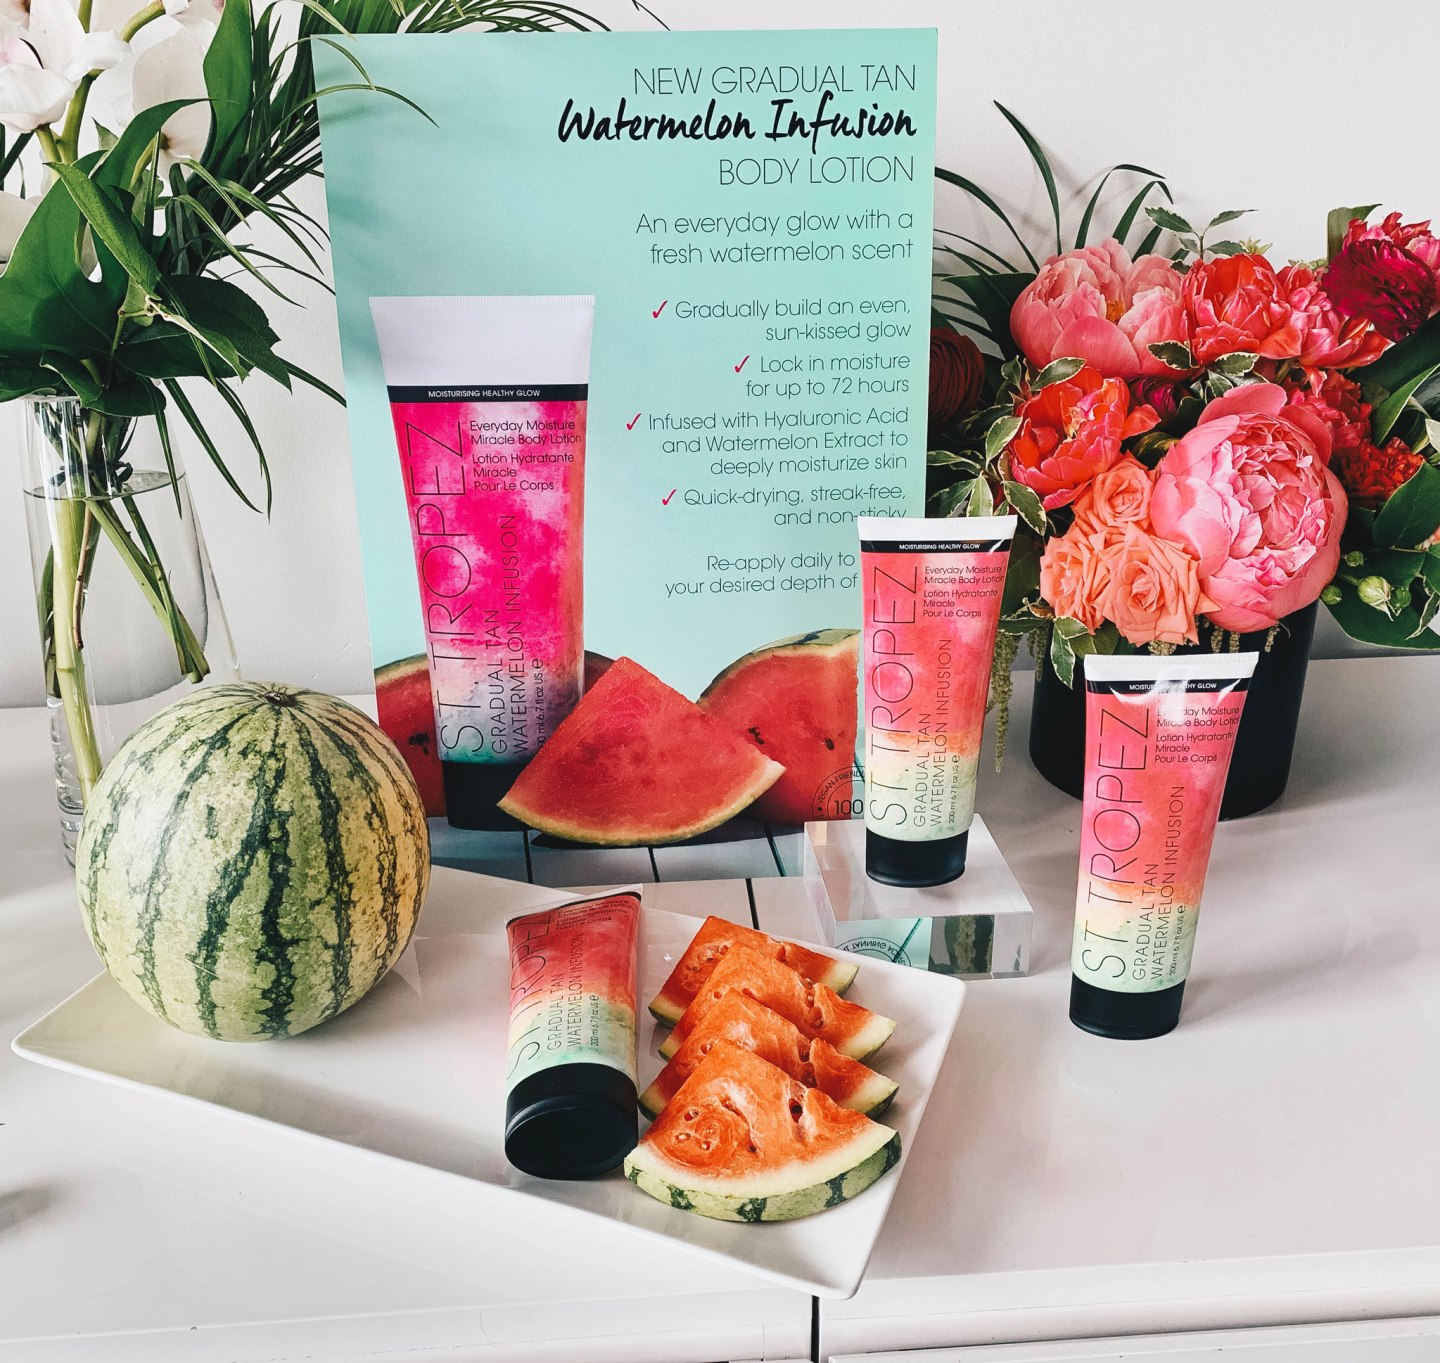 St. Tropez Watermelon Infusion Everyday Moisture Miracle Body Lotion